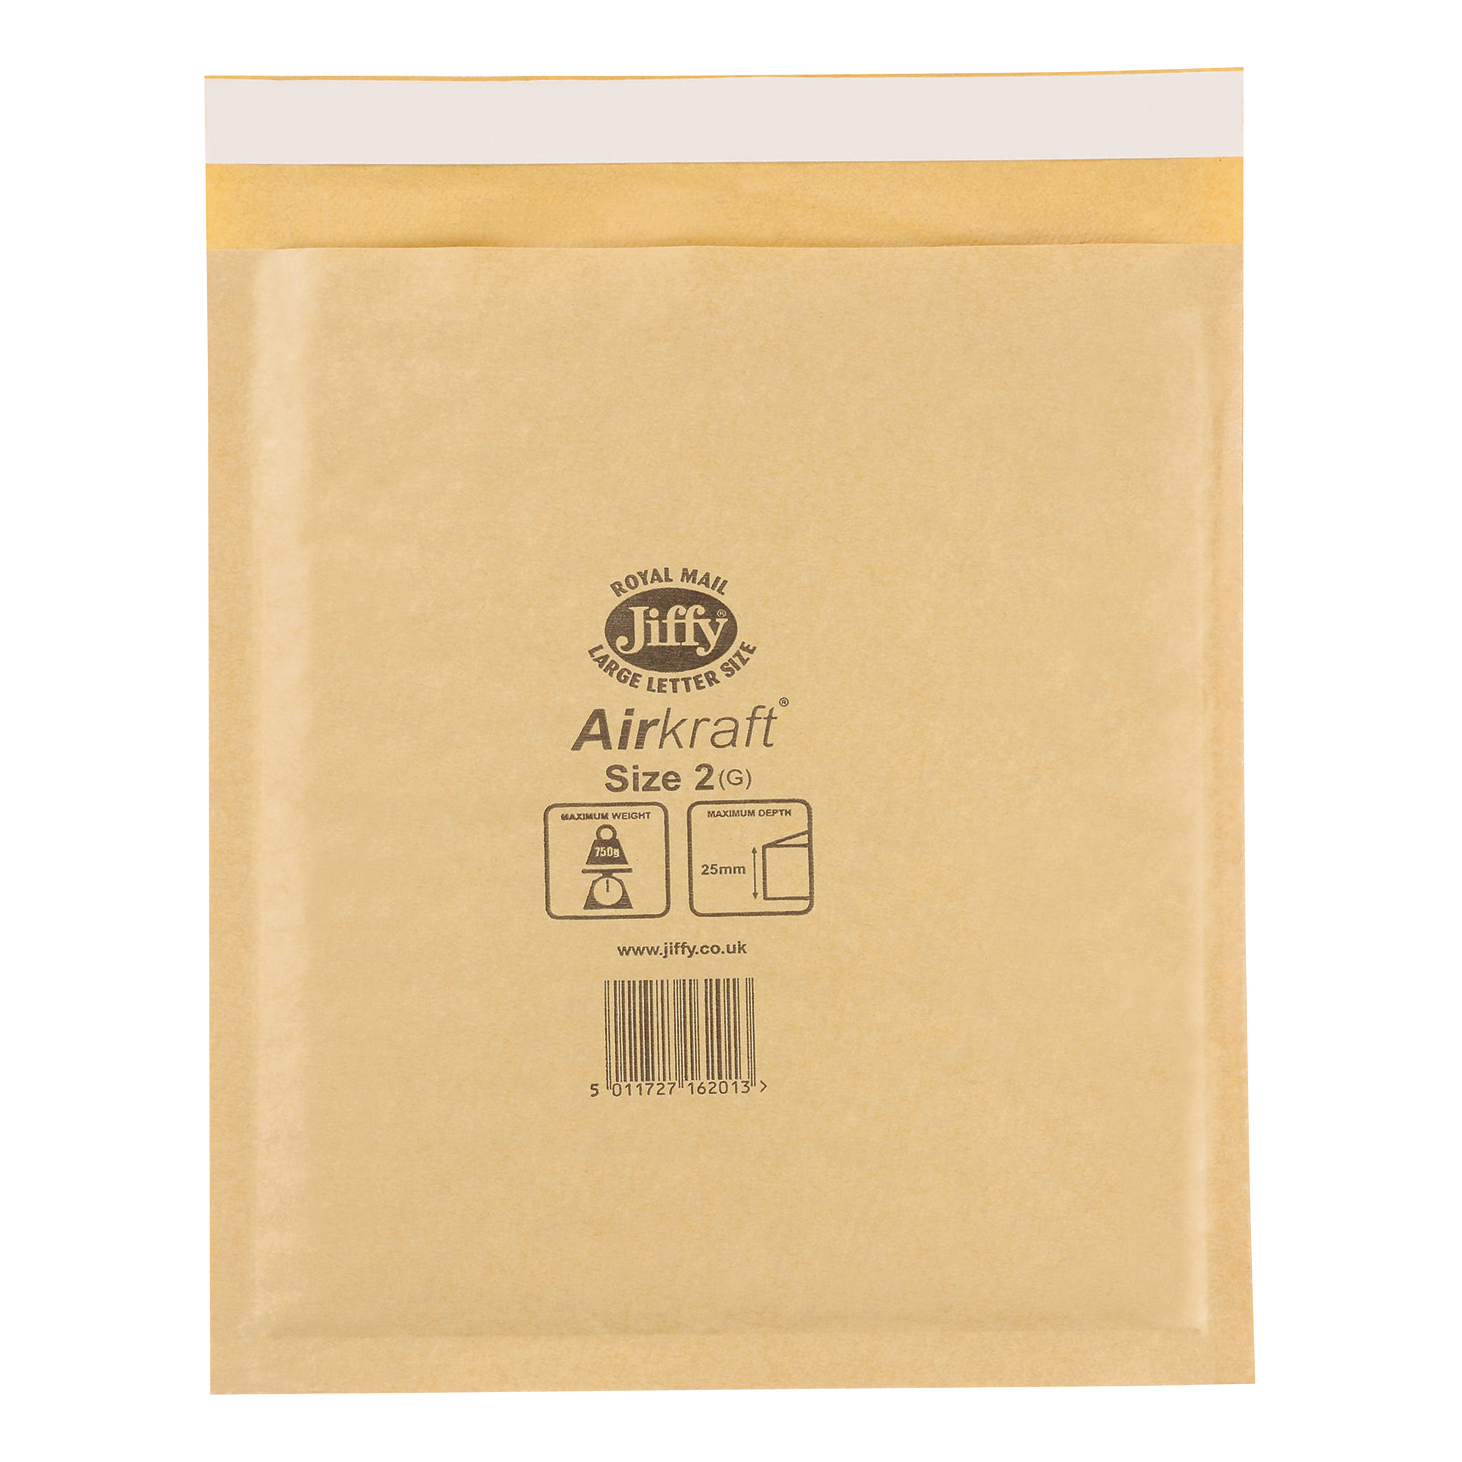 Jiffy Airkraft Bubble Bag Envelopes Size 2 205x245mm Gold Ref JL-GO-2 [Pack 100]